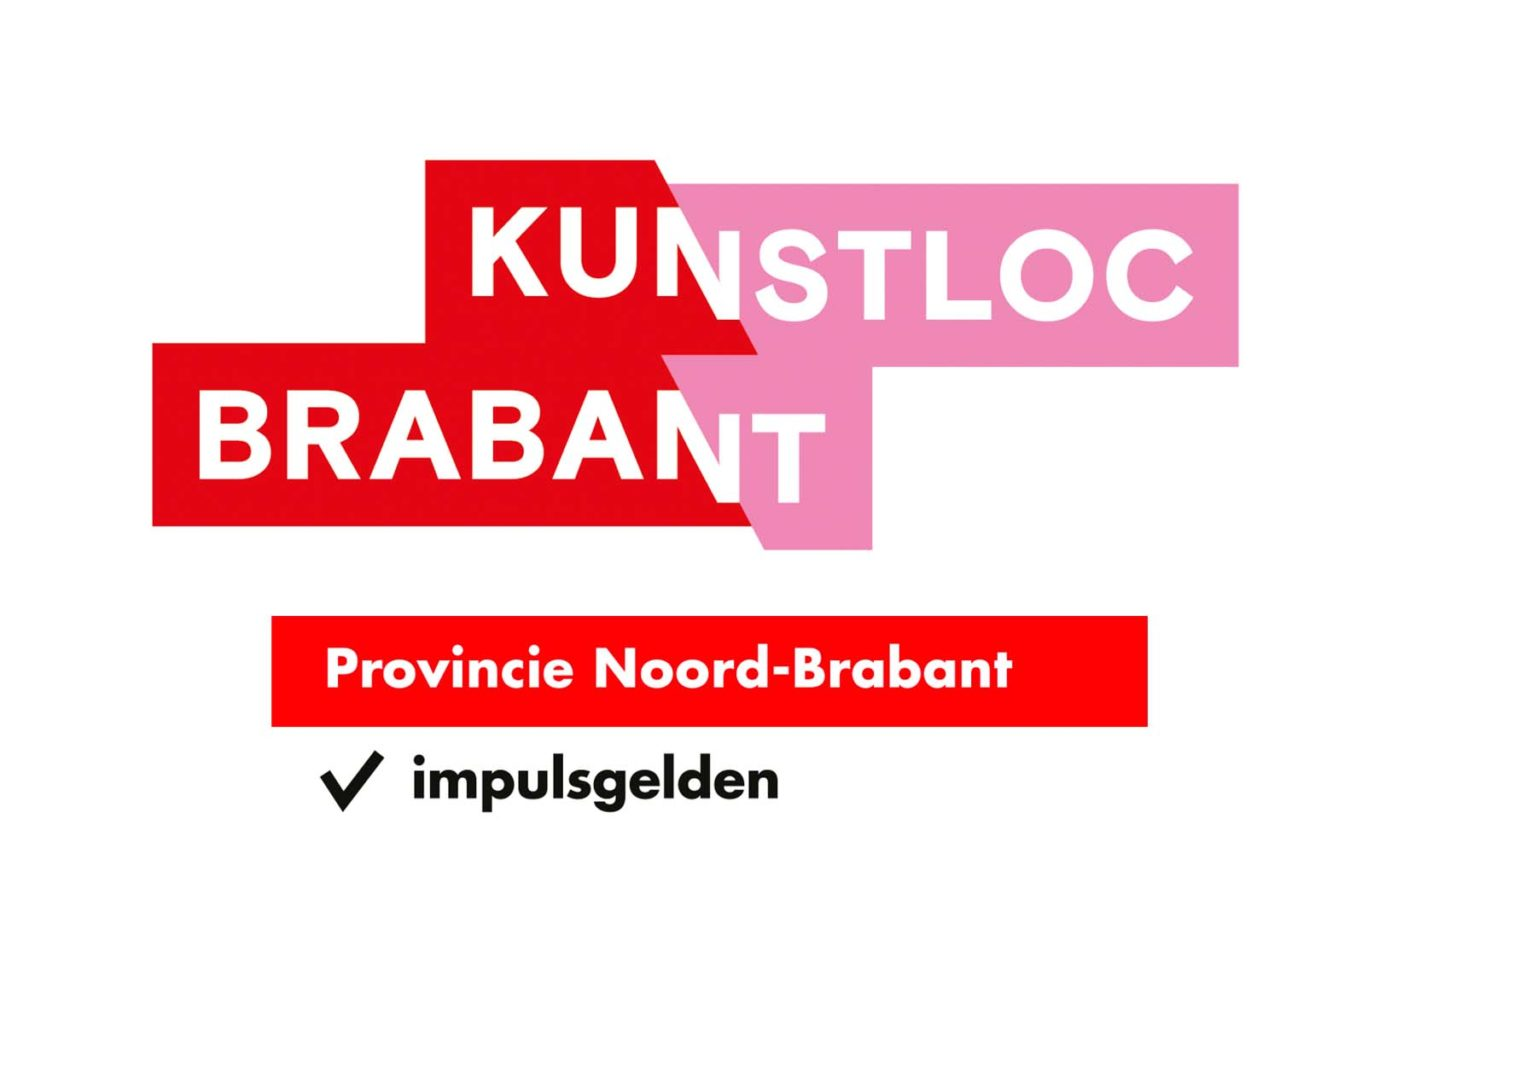 logo_impulsgelden_kunstloc_brabant_website